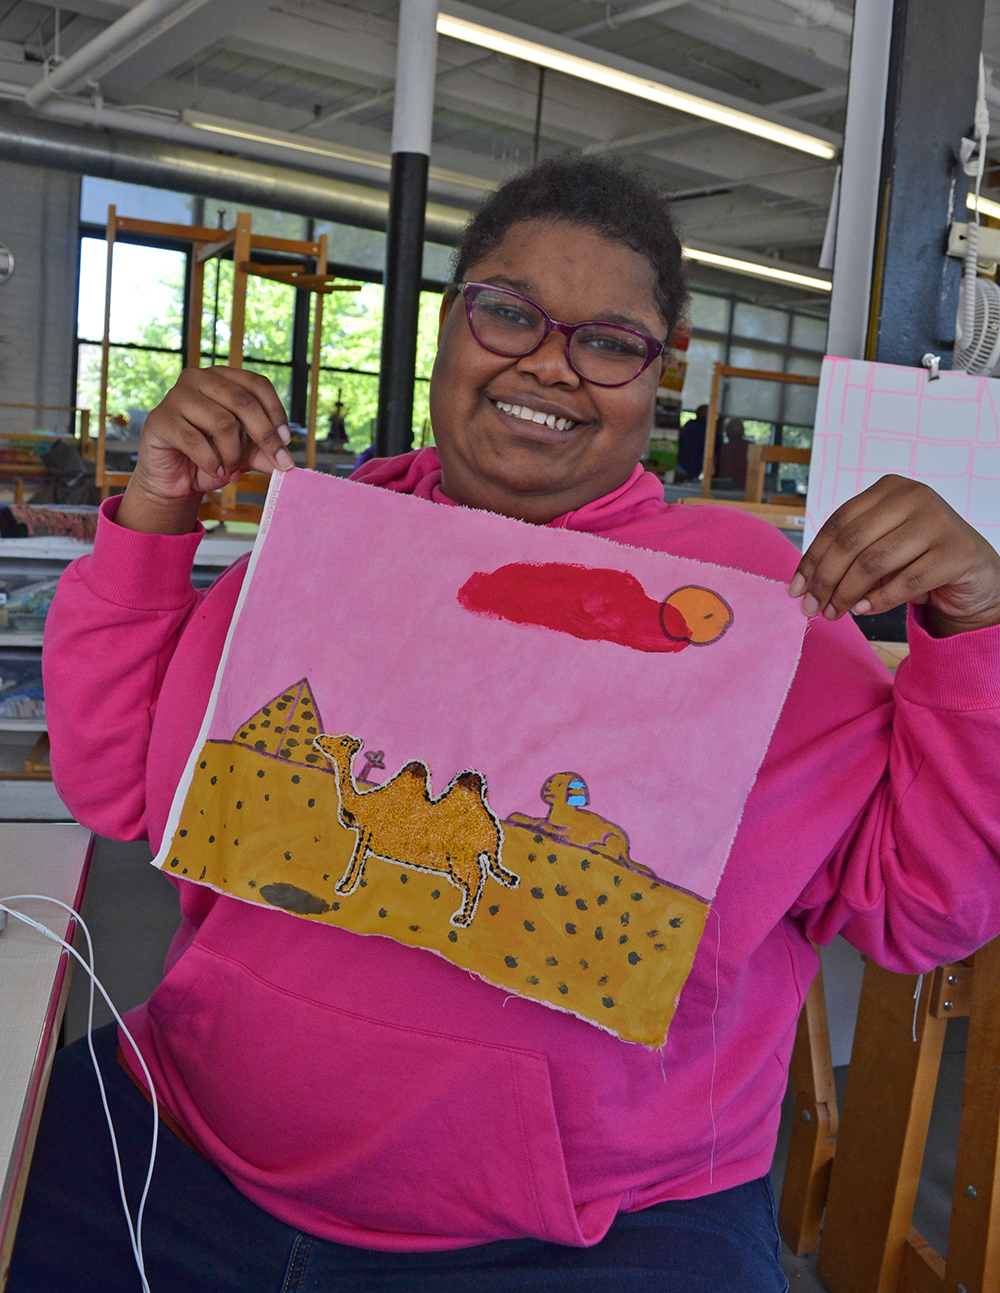 Jamilah Monroe showing off her artwork